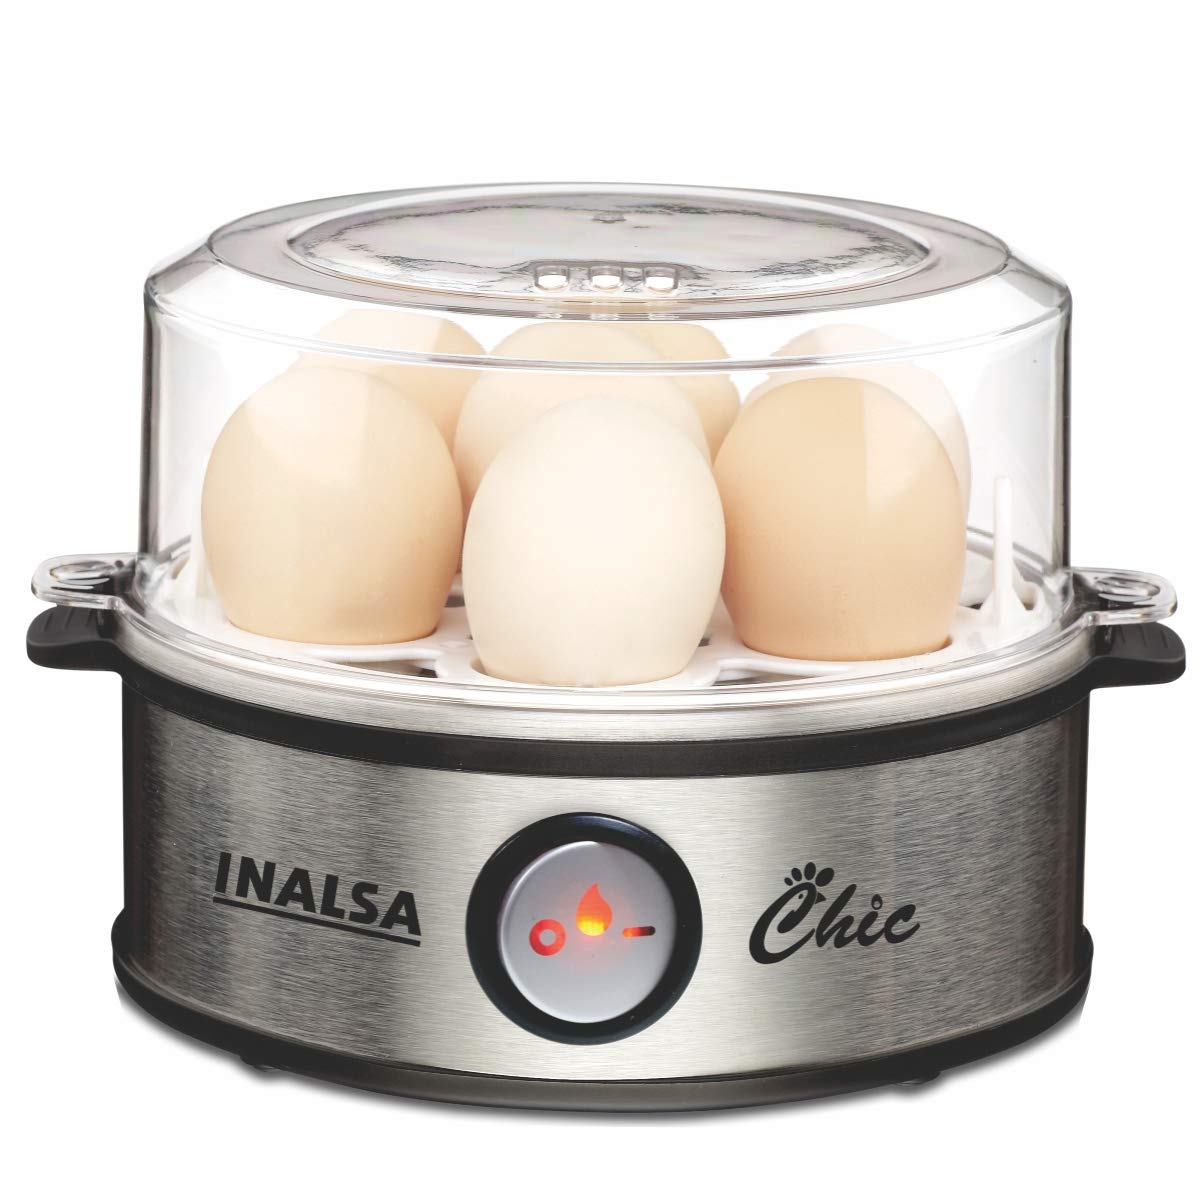 Inalsa Chic Instant Egg Boiler, 350 Watts